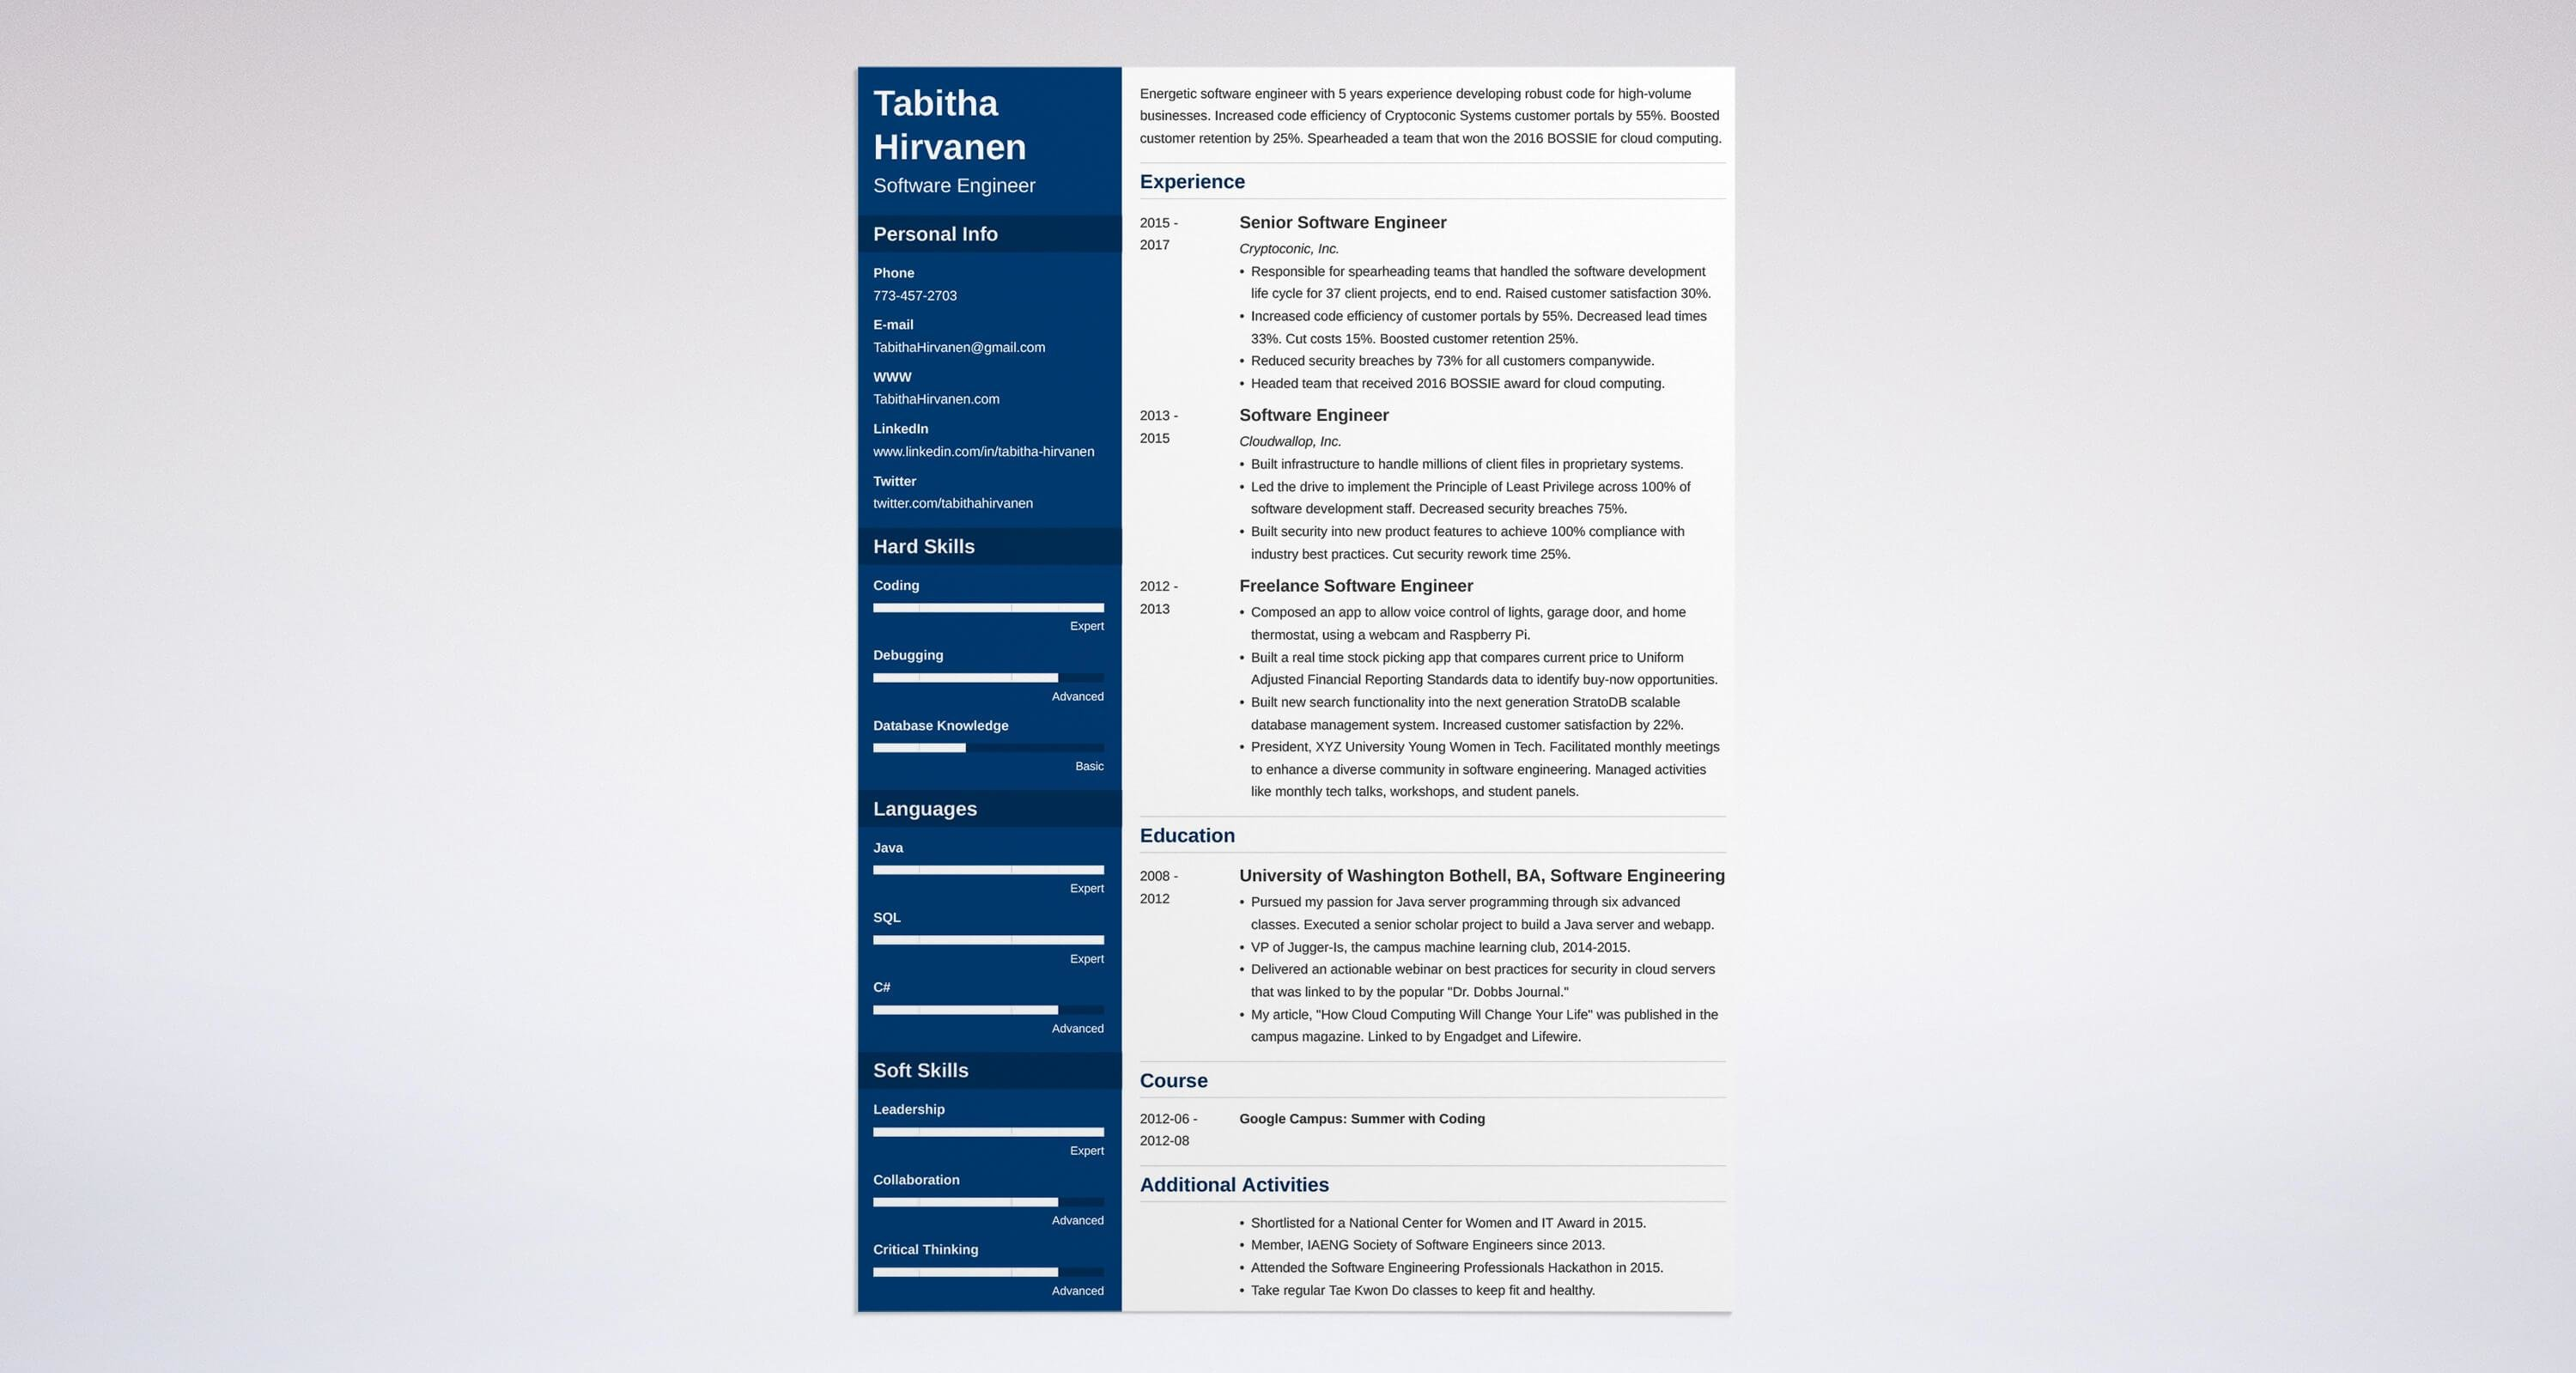 Software Engineer Resume: Guide and a Sample [+20 Examples]